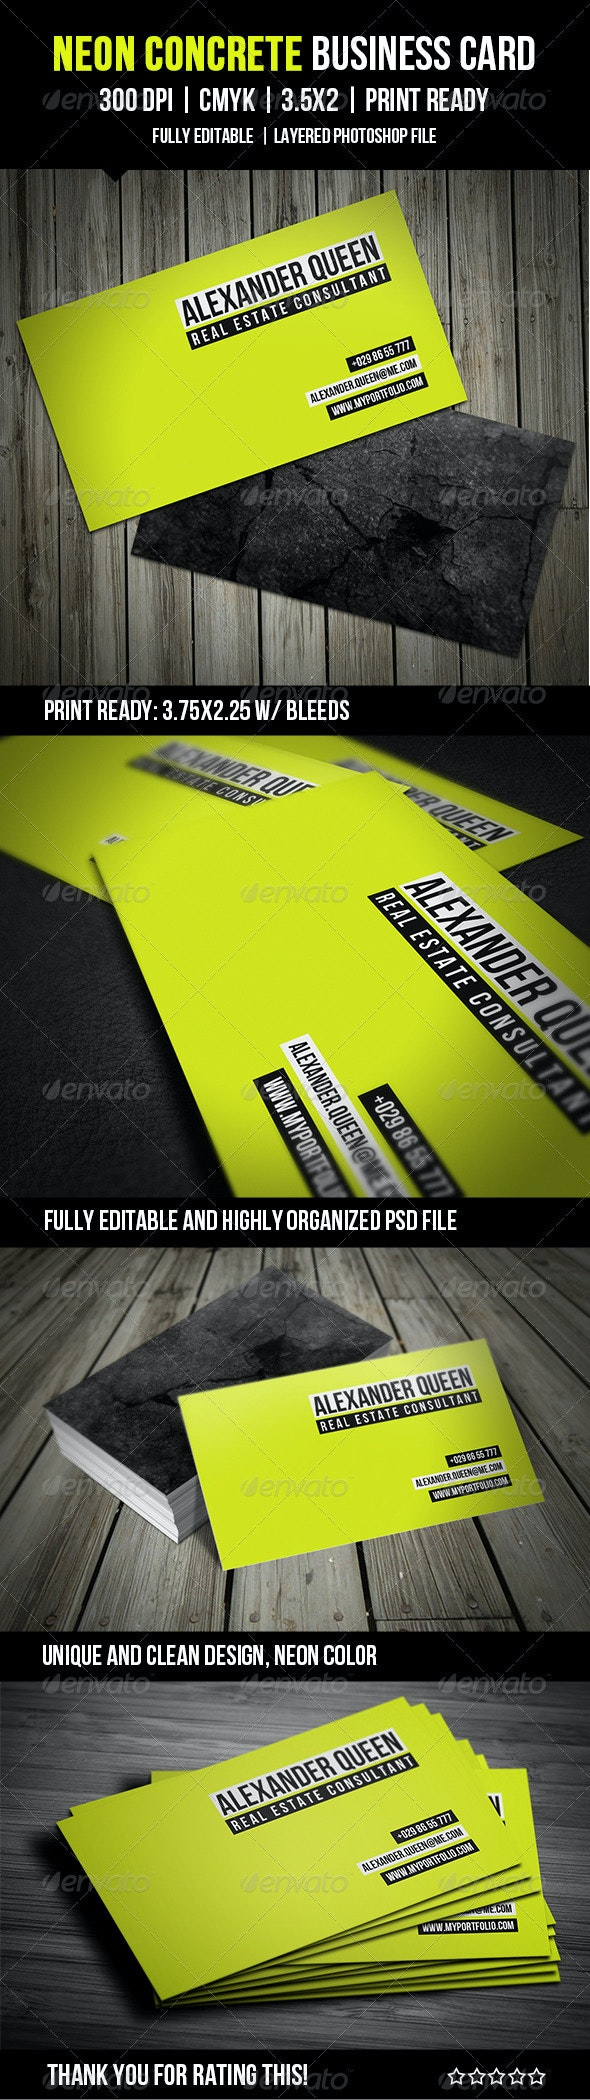 Neon Concrete Business Card - Business Cards Print Templates